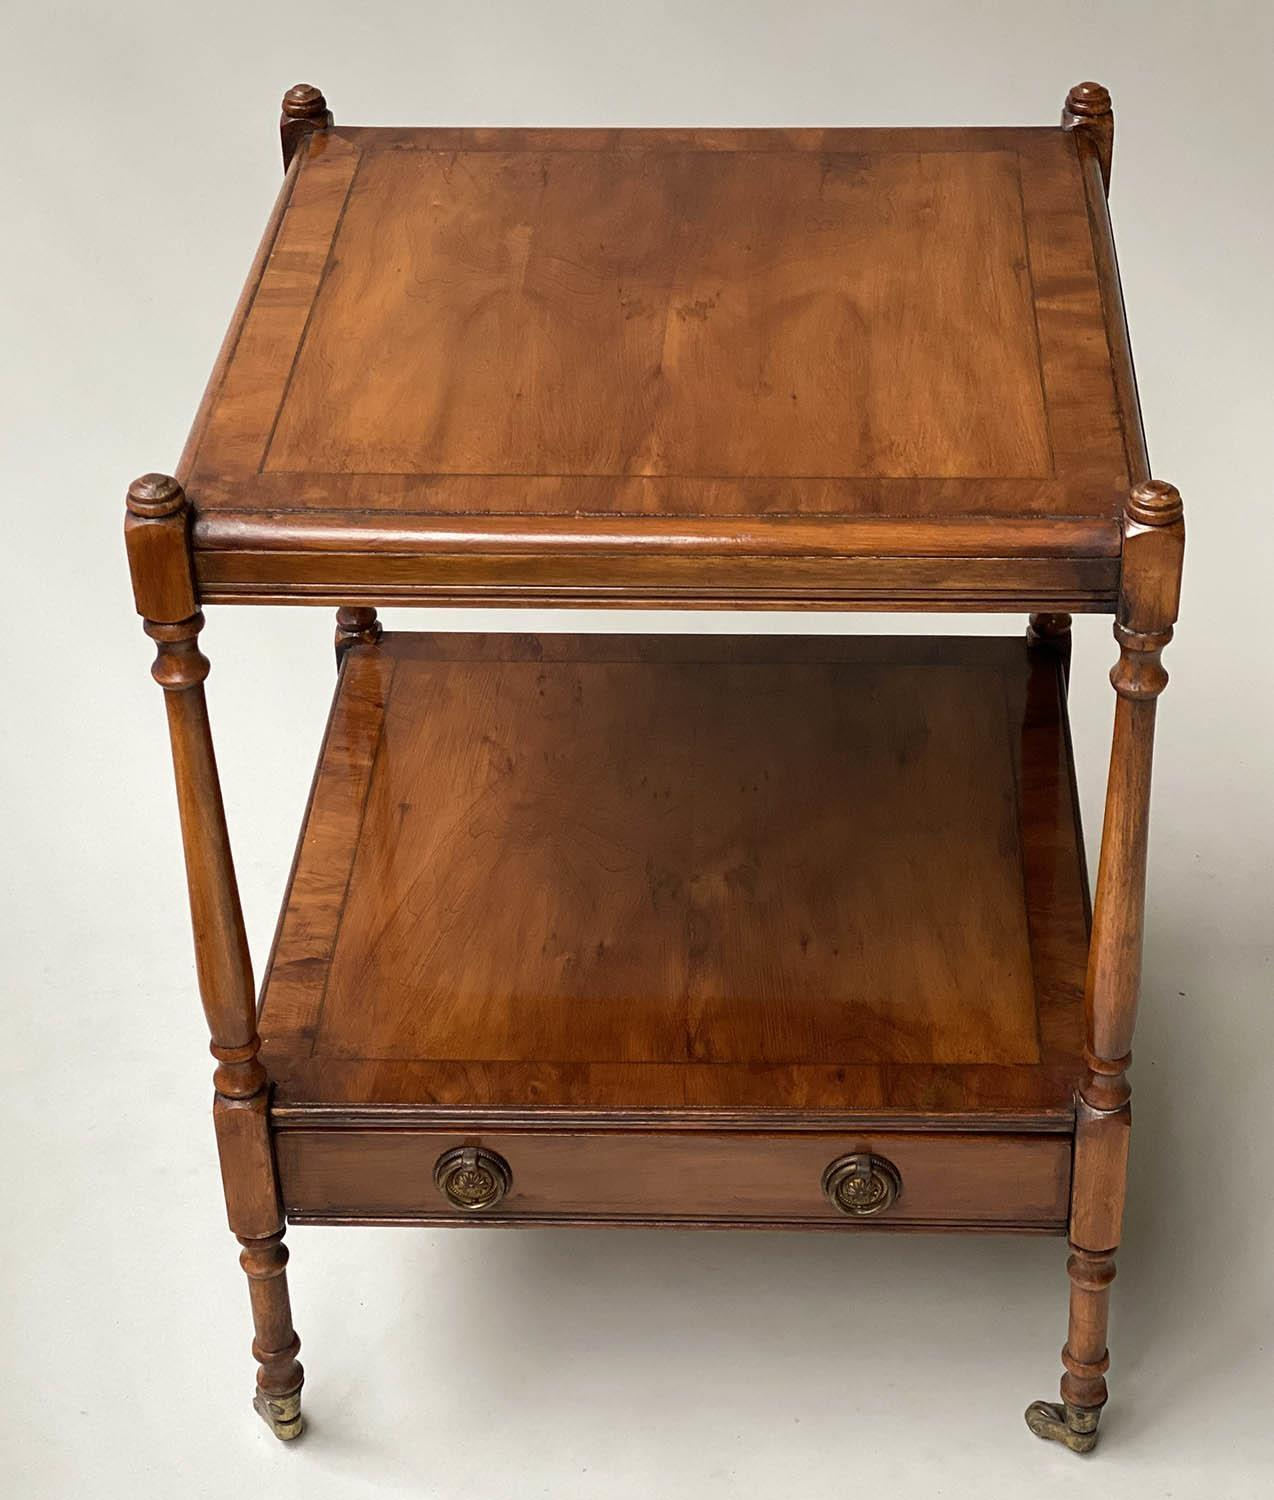 LAMP TABLES, a pair, George III style yewwood of two tiers, each with drawer, 45cm x 45cm x 60cm - Image 6 of 6